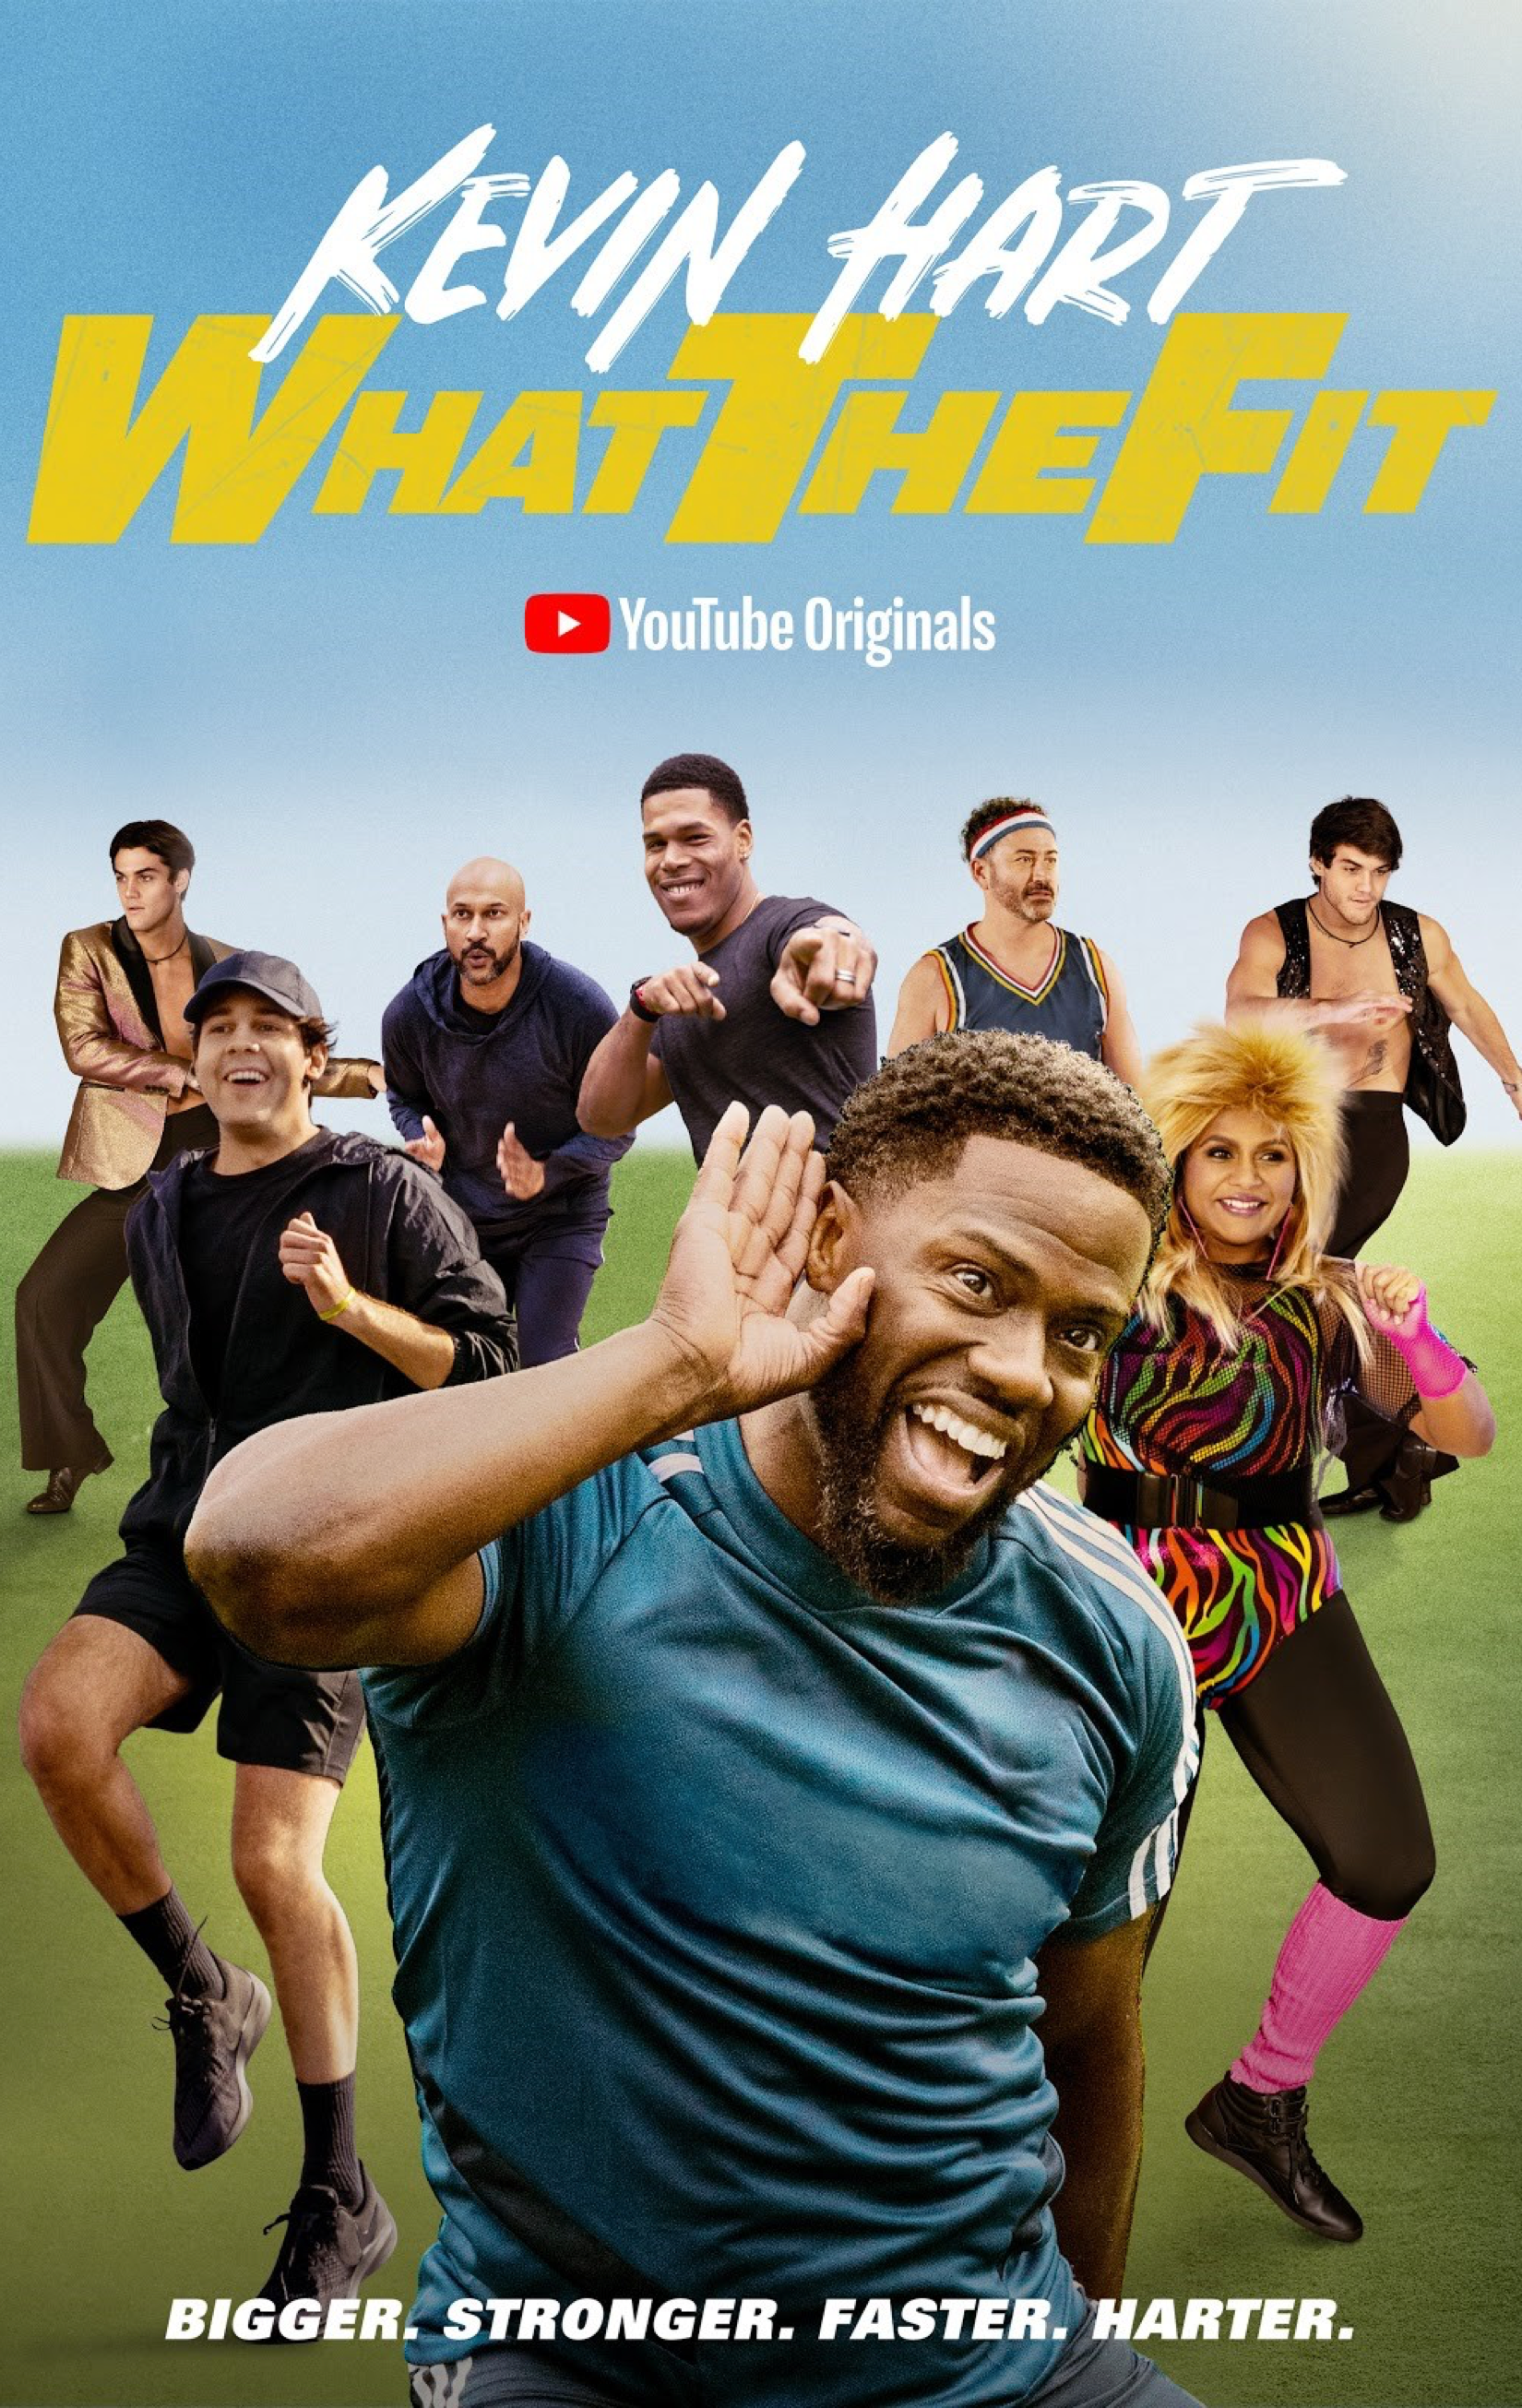 wtf-what-the-fit, kevin hart, celebrity guests, James Corden, Conan O'Brien, Tiffany Haddish, Khloé Kardashian, Leslie Jones, Terry Crews, Gymnastics